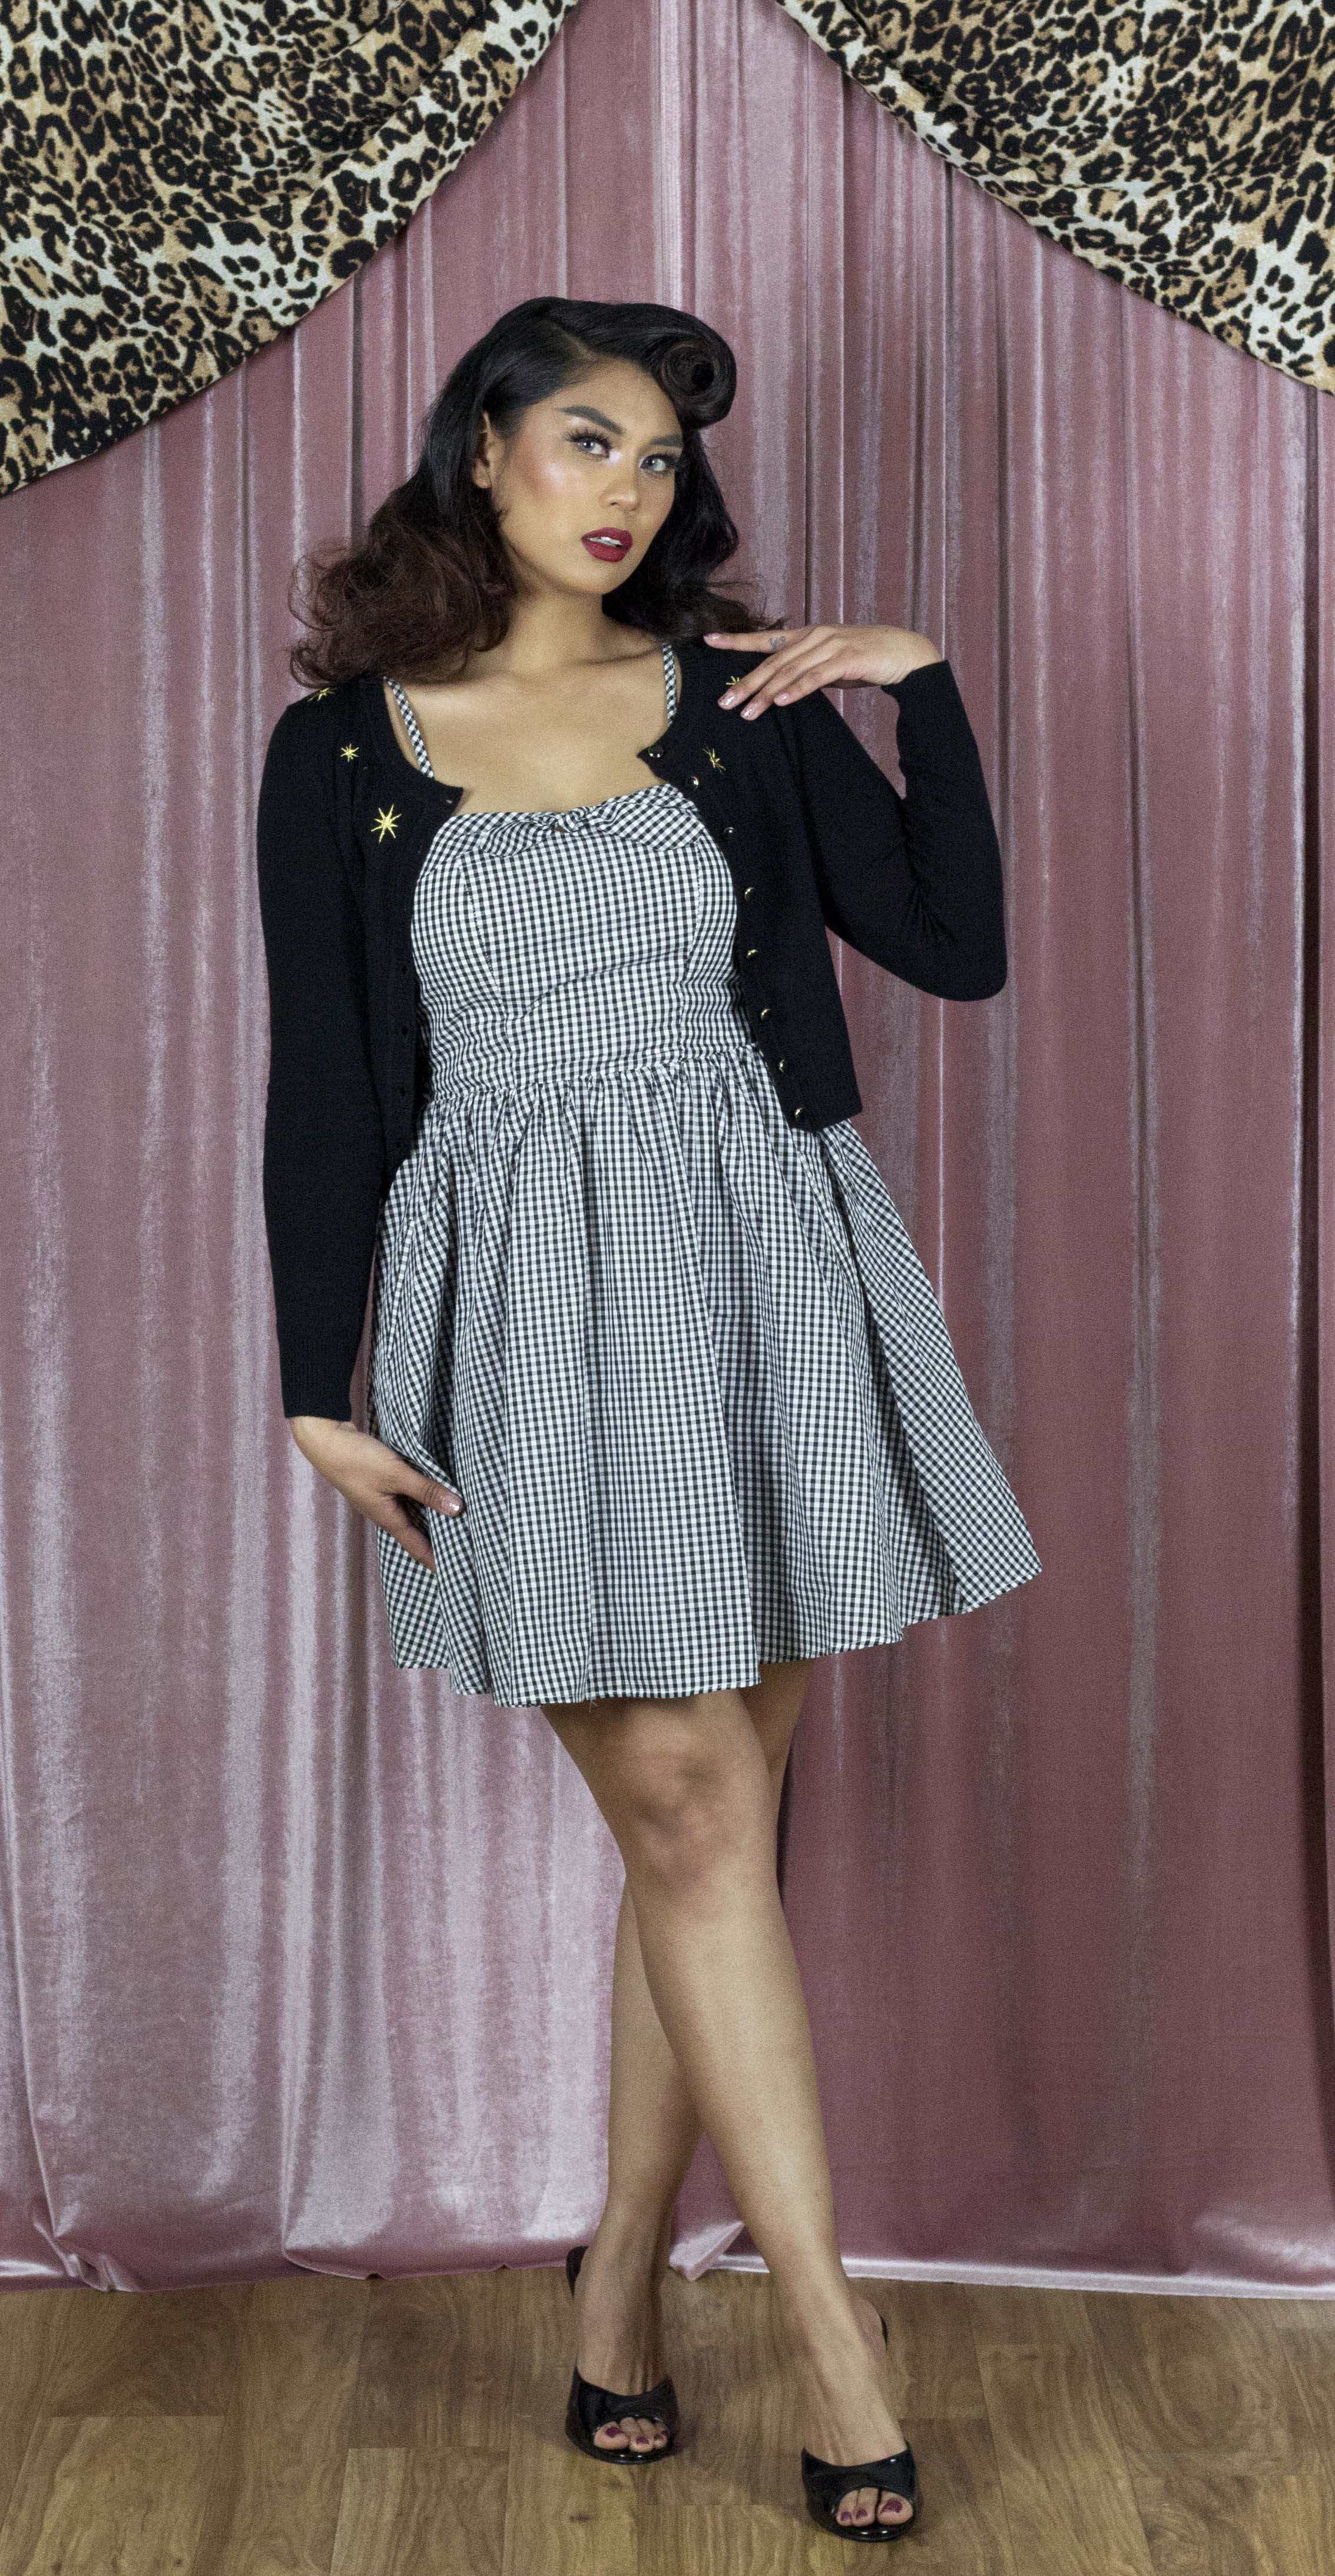 d19851949276 Retro Inspired Gingham Swing Dress in Black & White – Double Trouble ...